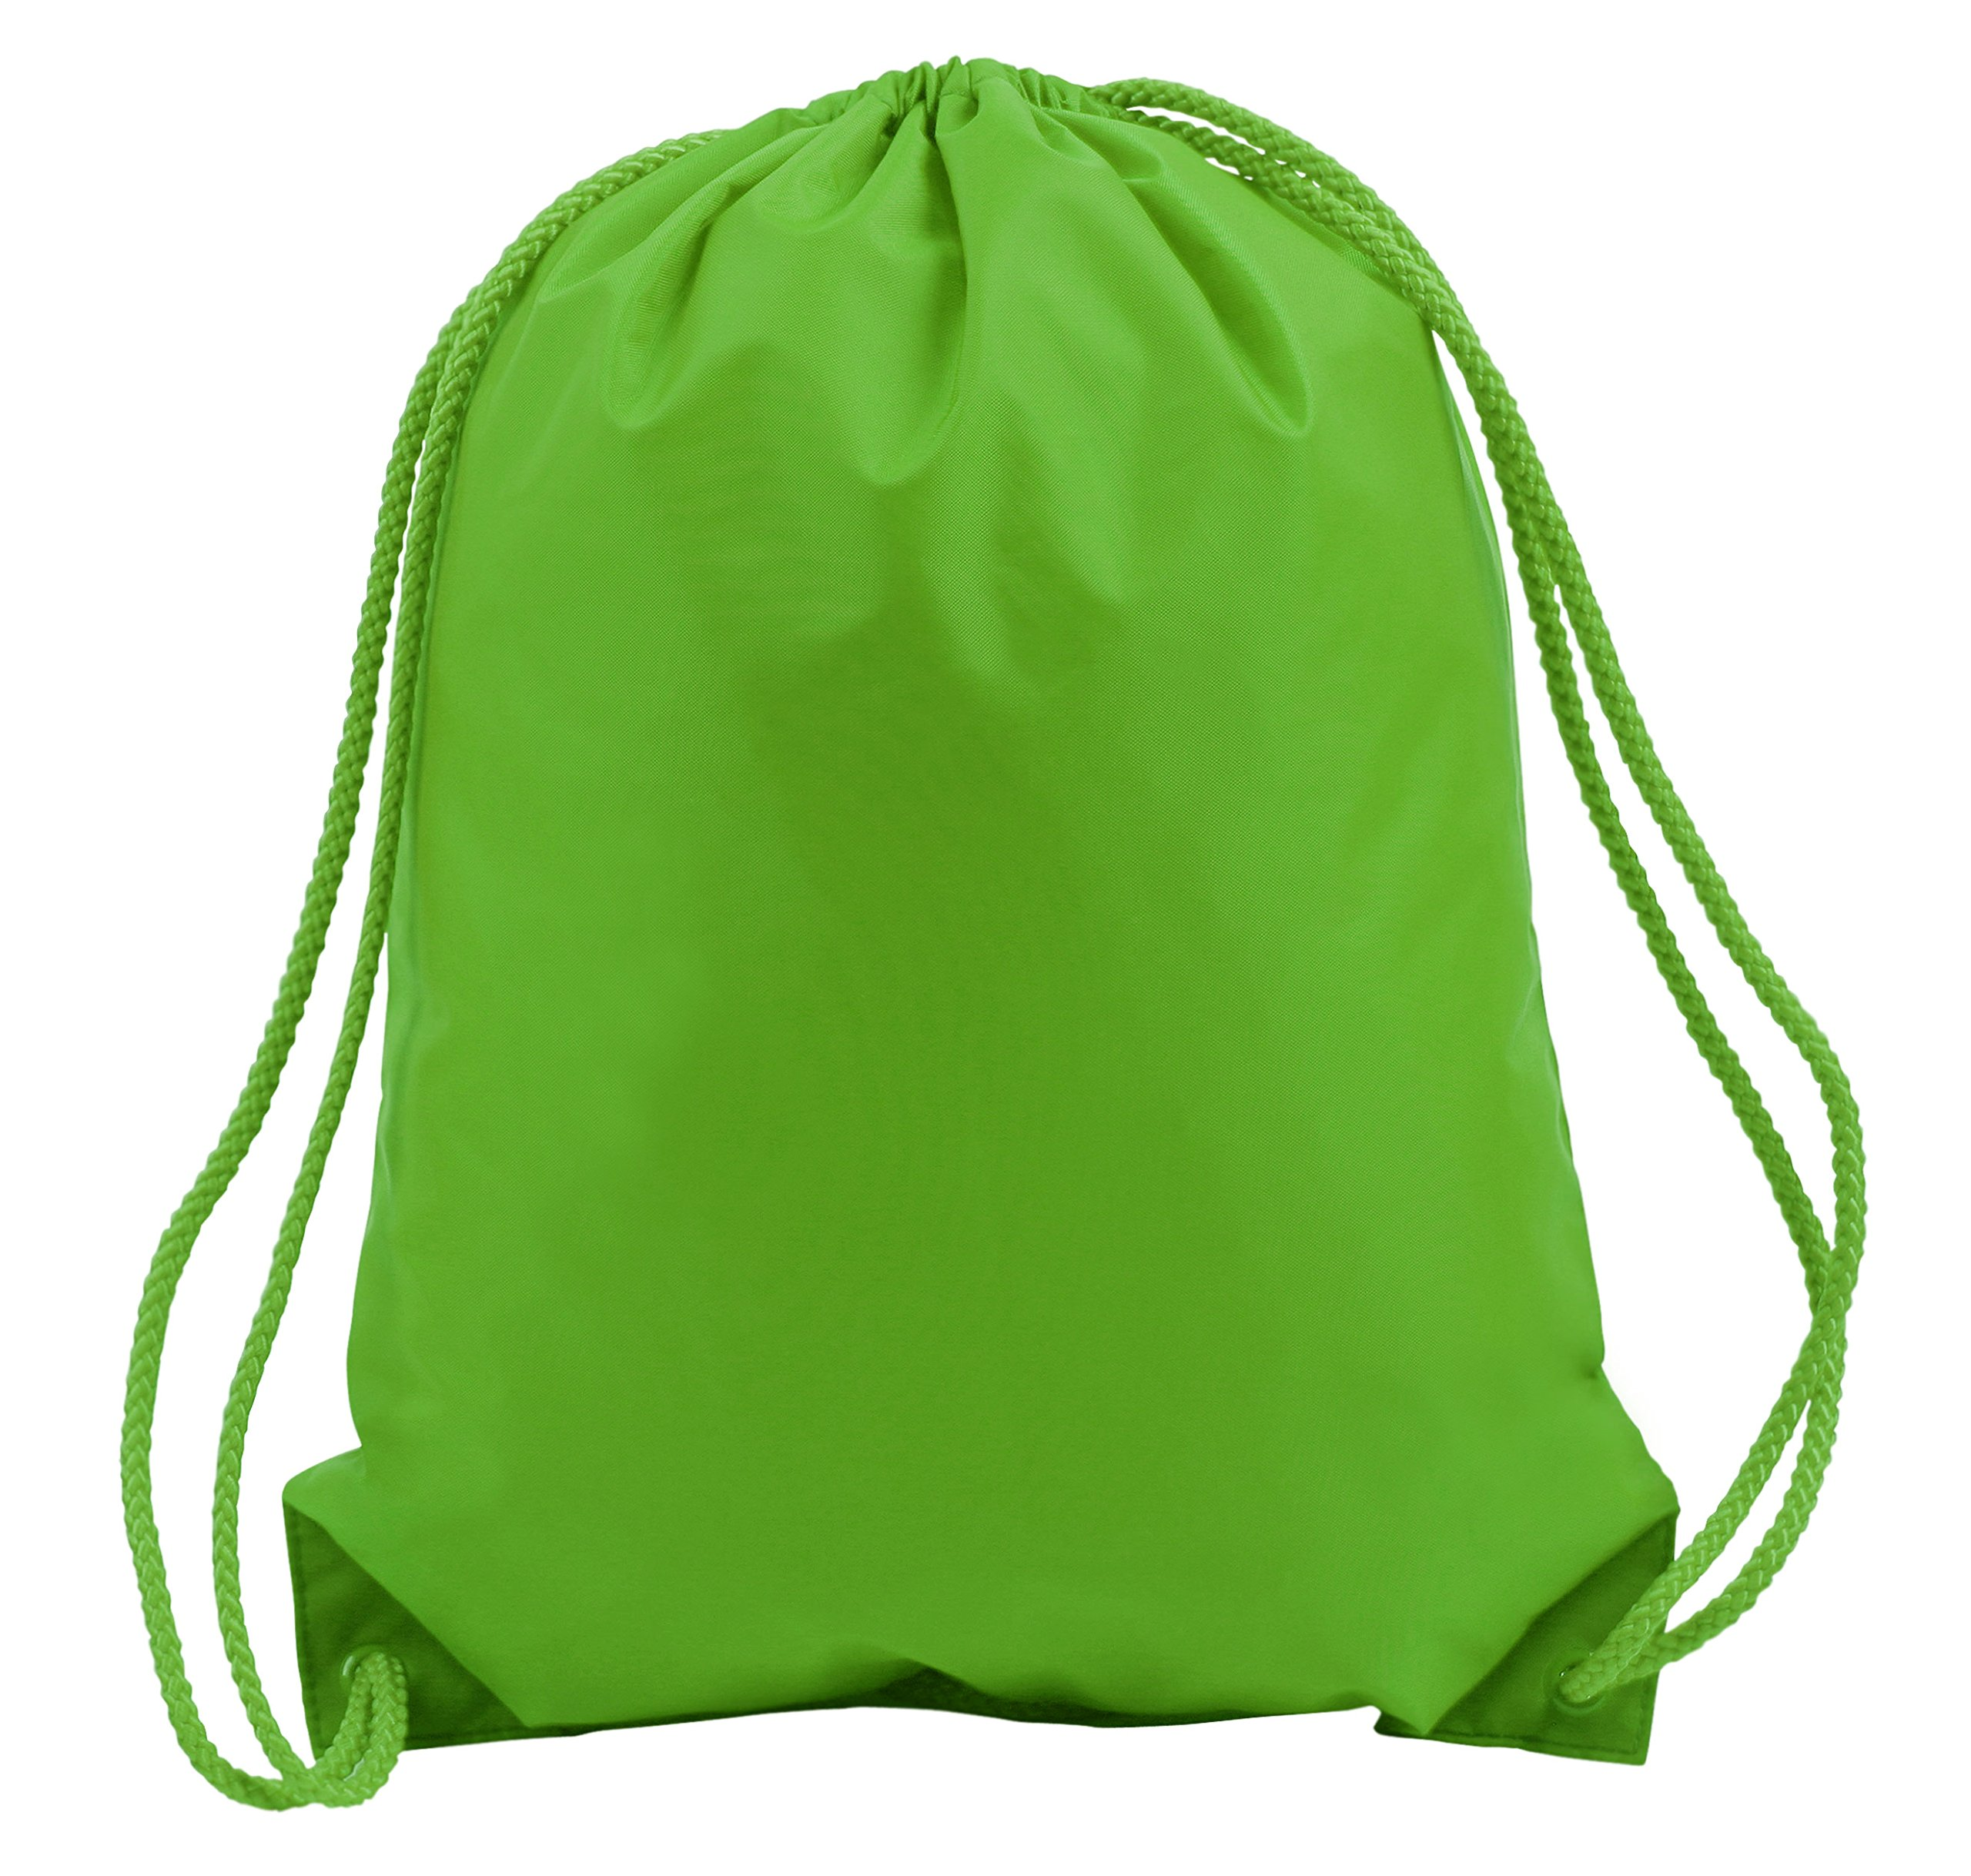 BOSTON DRAWSTRING BACKPACK, Lime Green, Case of 60